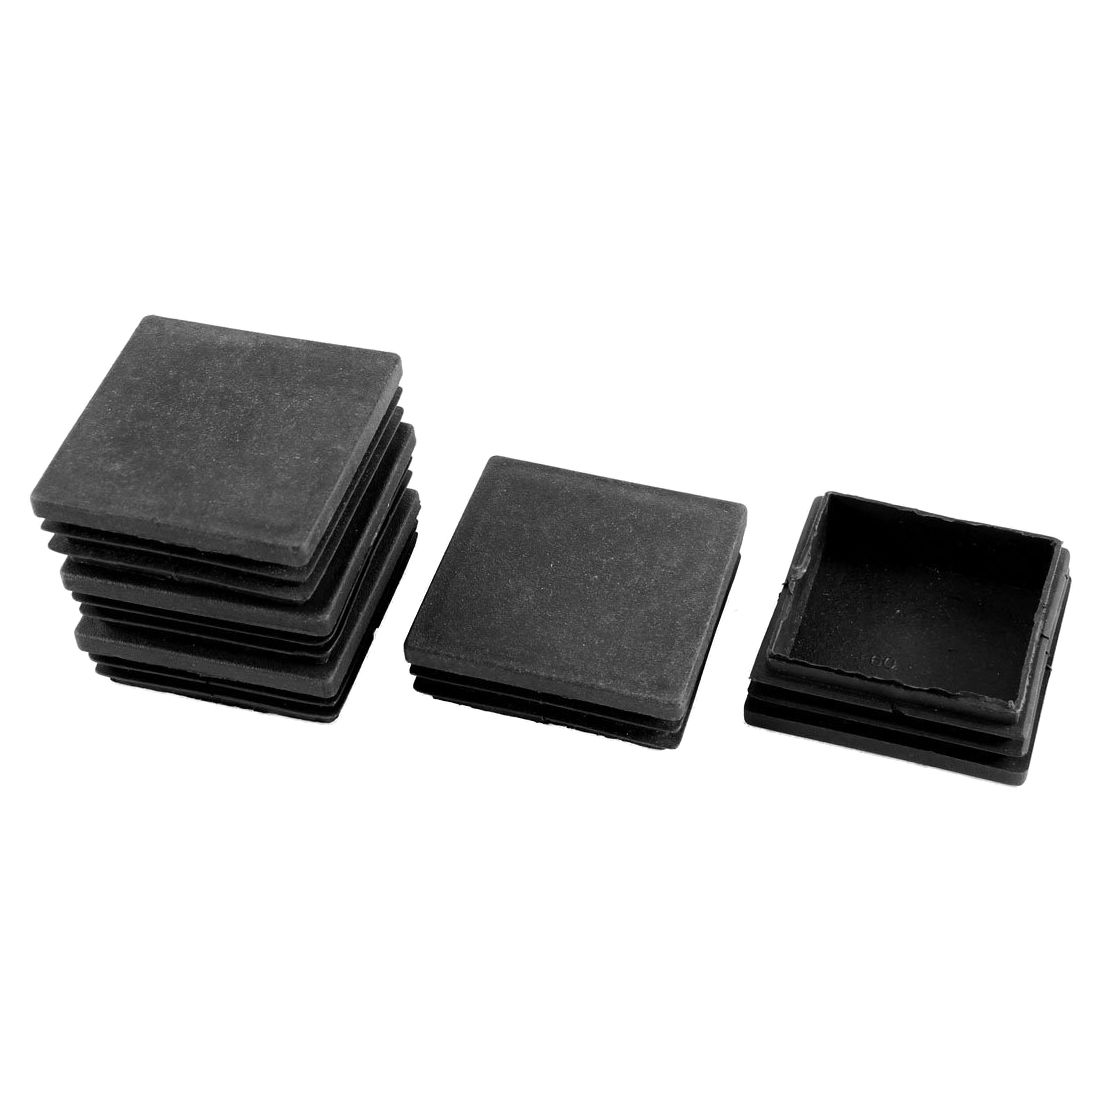 Promotion! Square Plastic Plug Cover Protective Caps For Cables 60 Mm X 60 Mm 5 Pieces